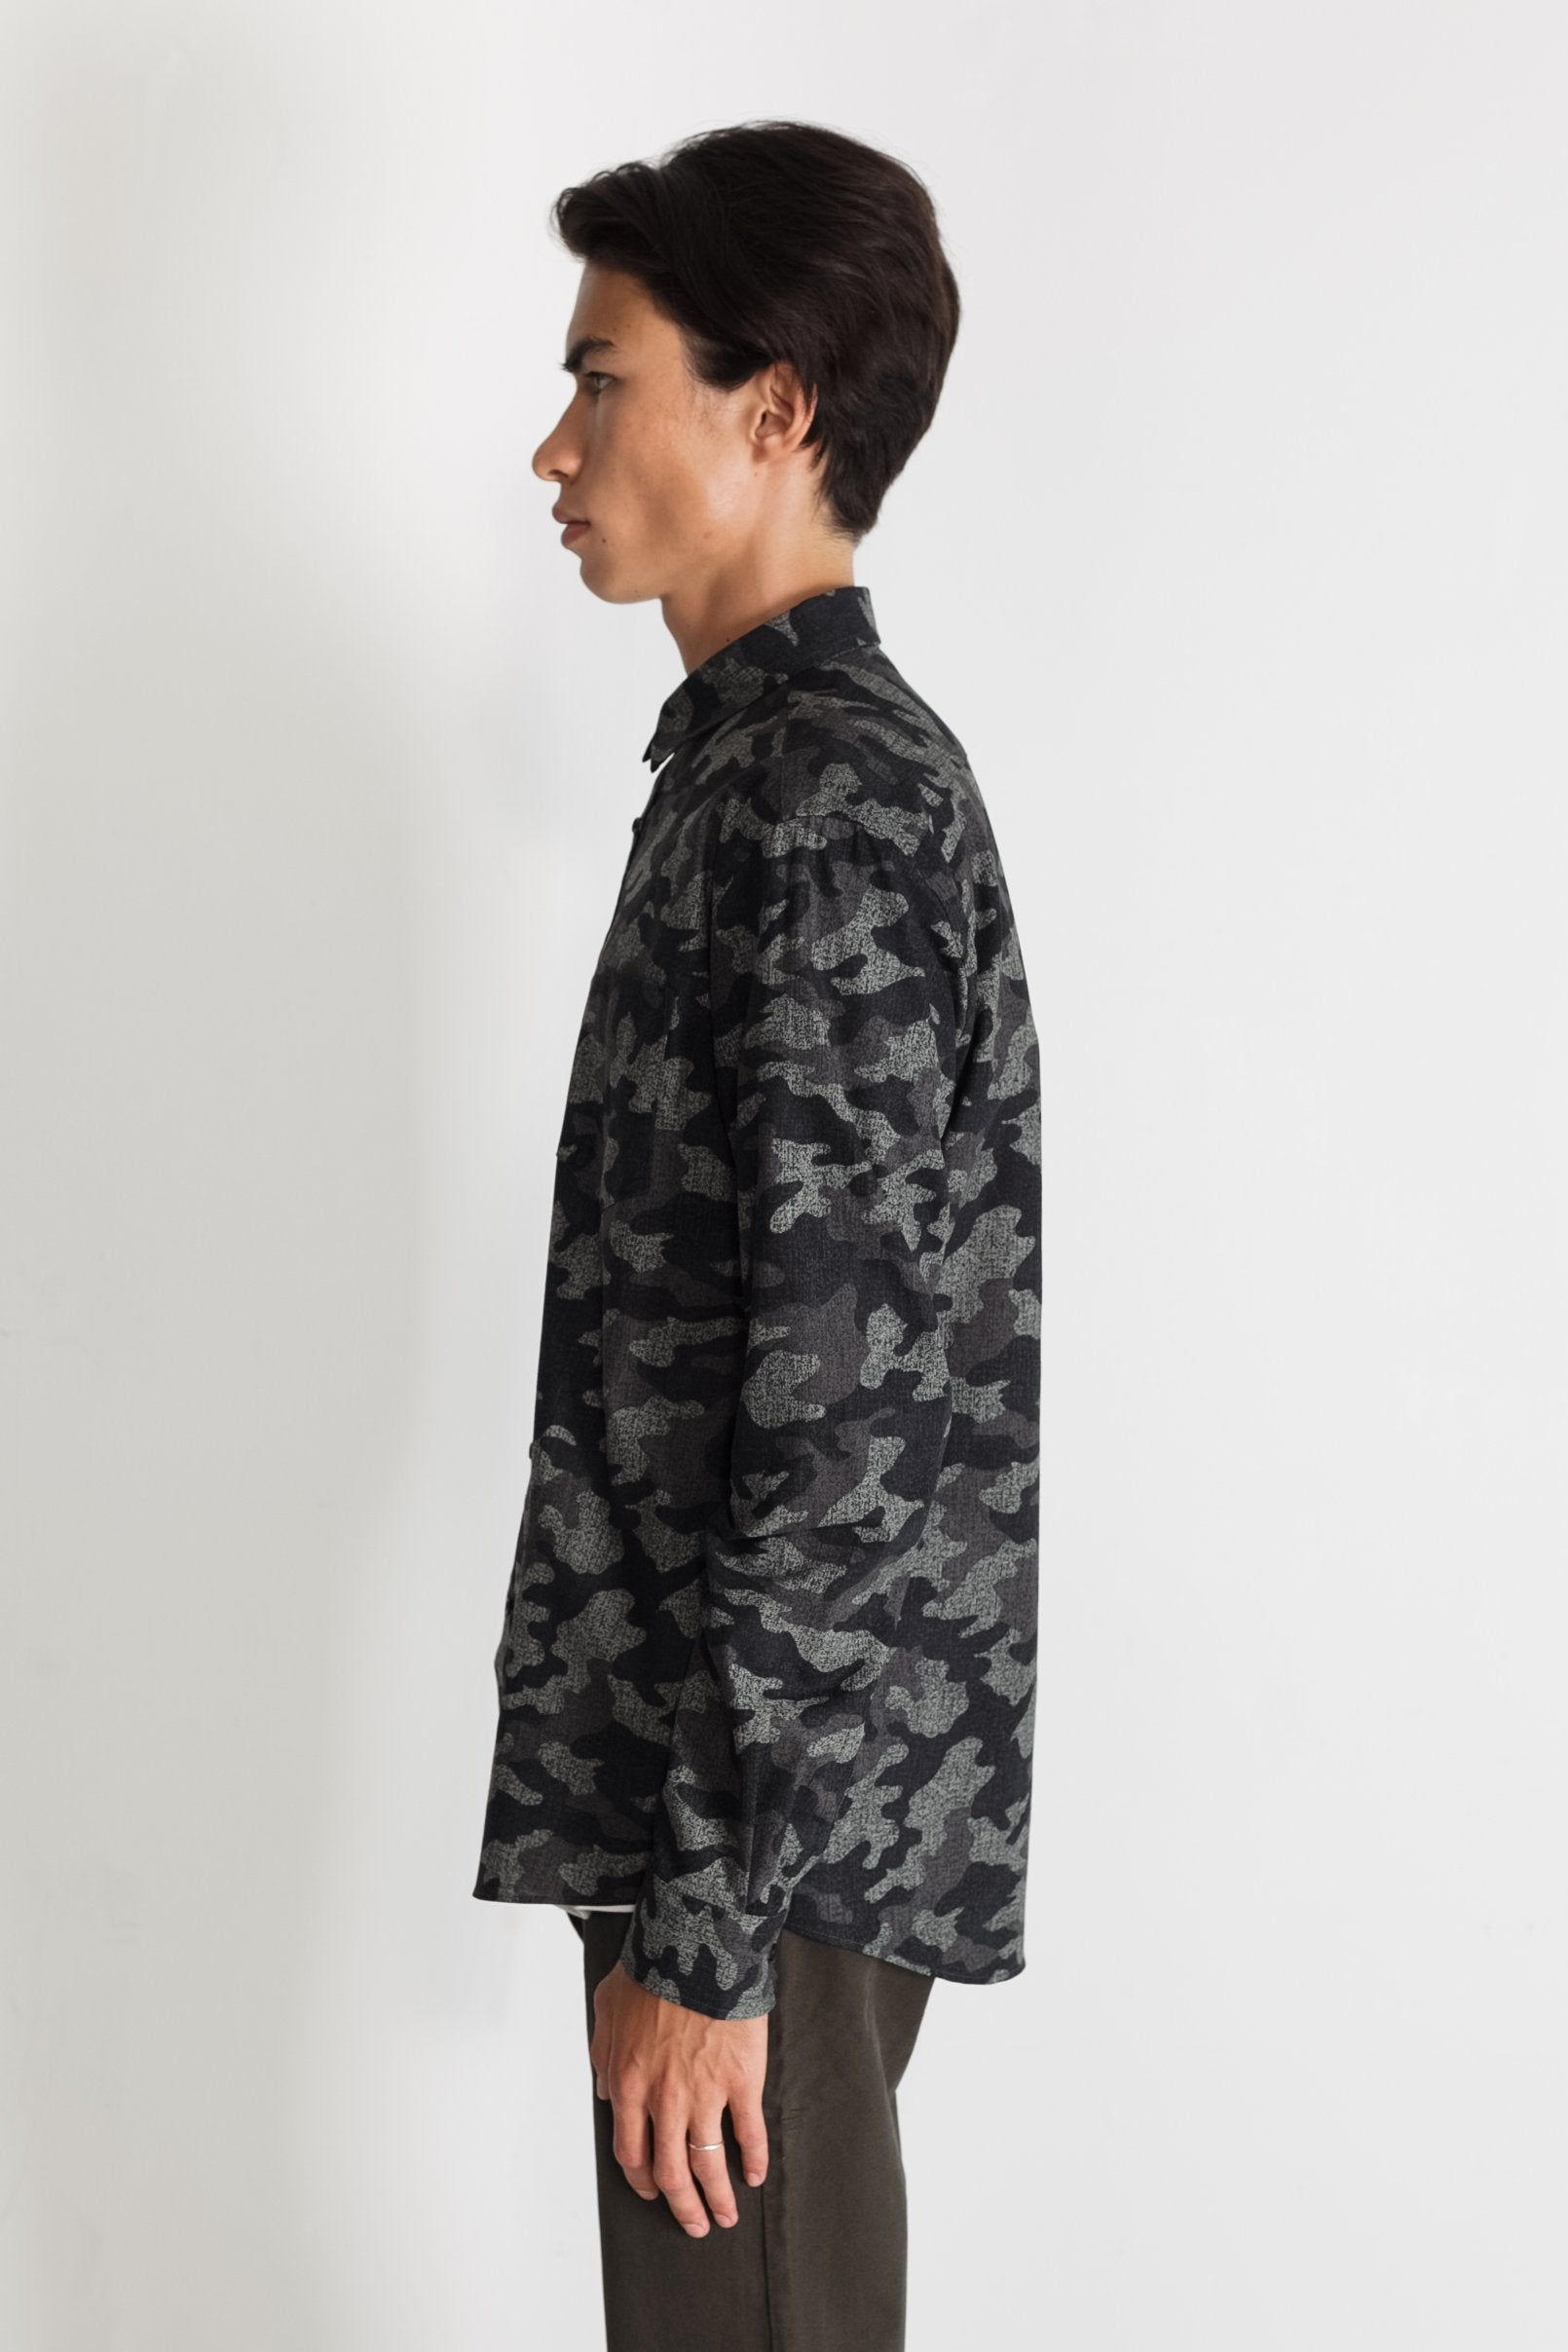 Japanese Camouflage Print in Grey 02